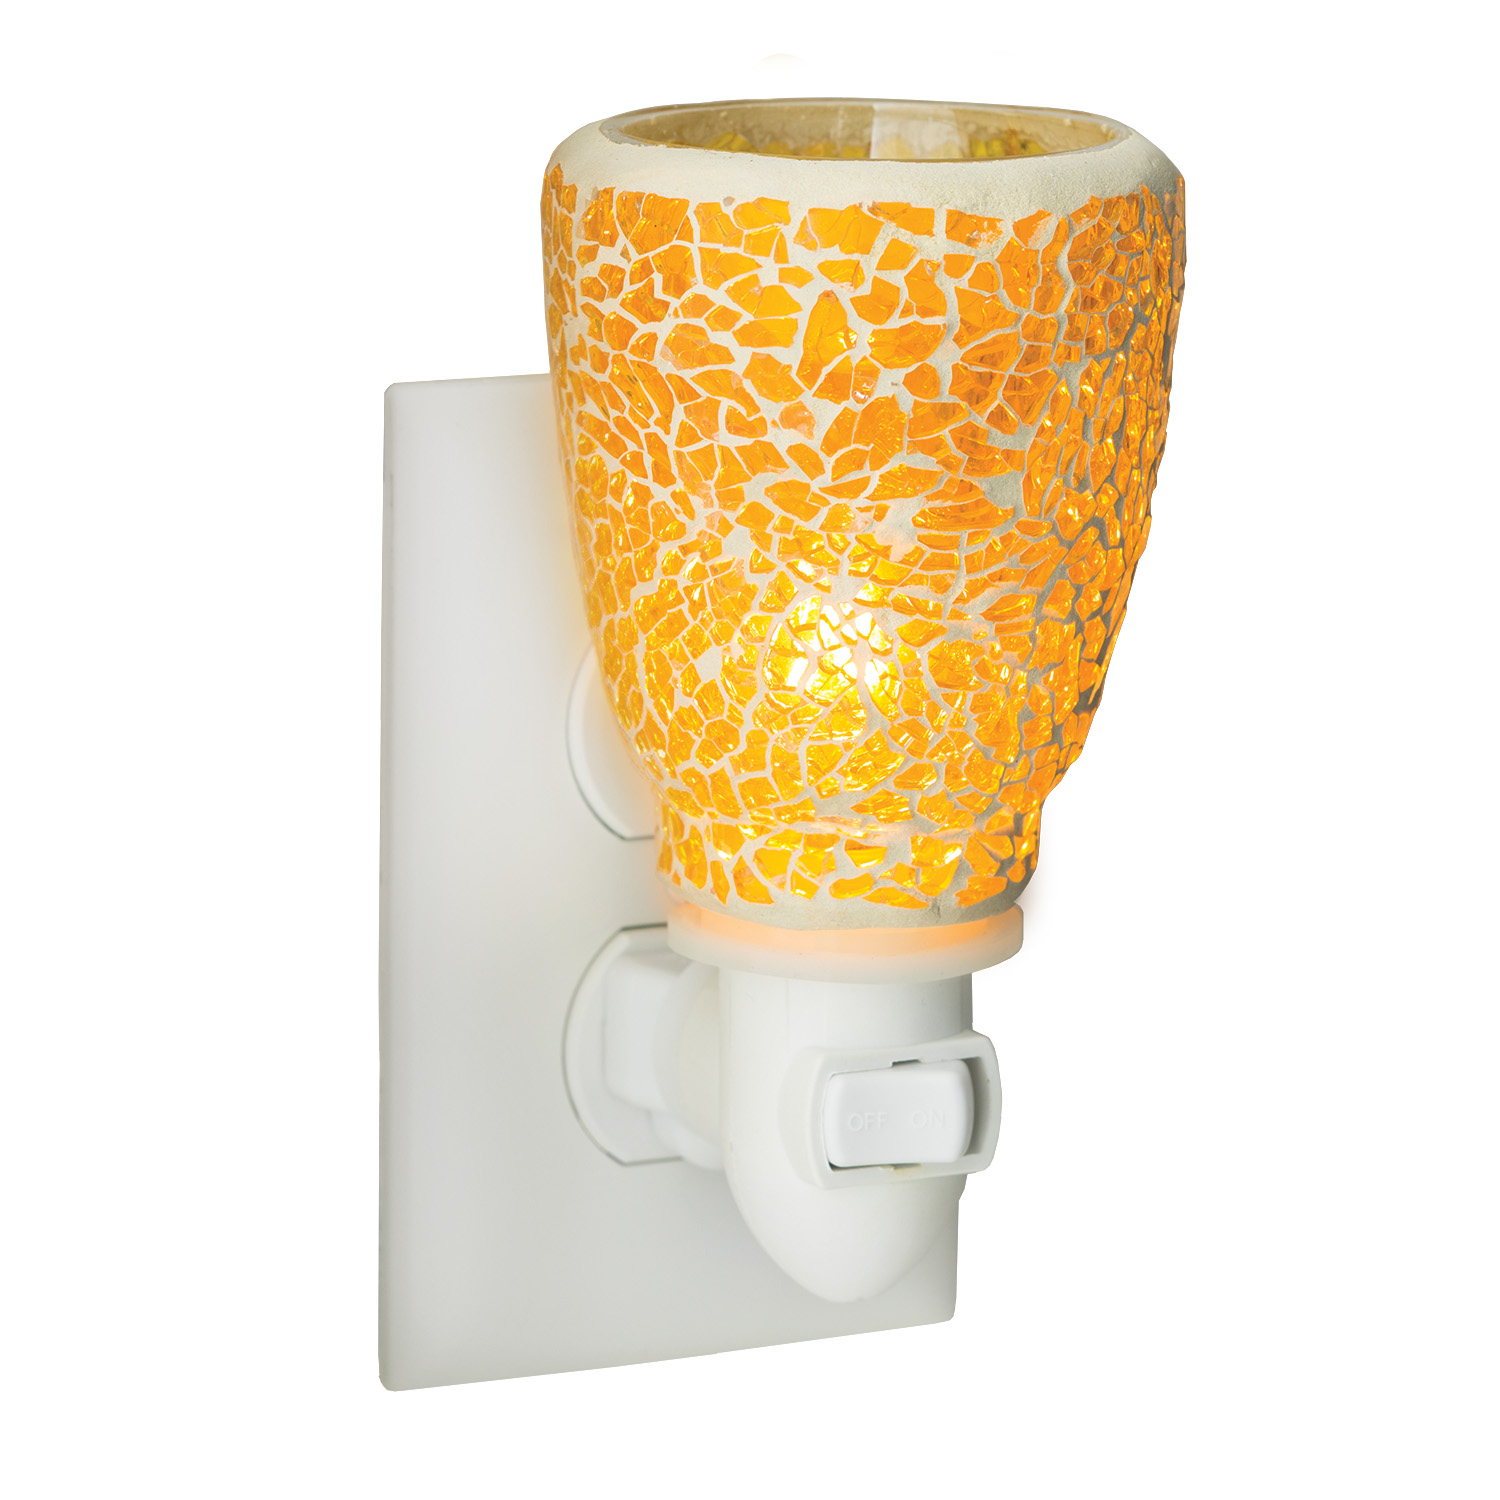 Crackled Amber Pluggable Fragrance Warmer